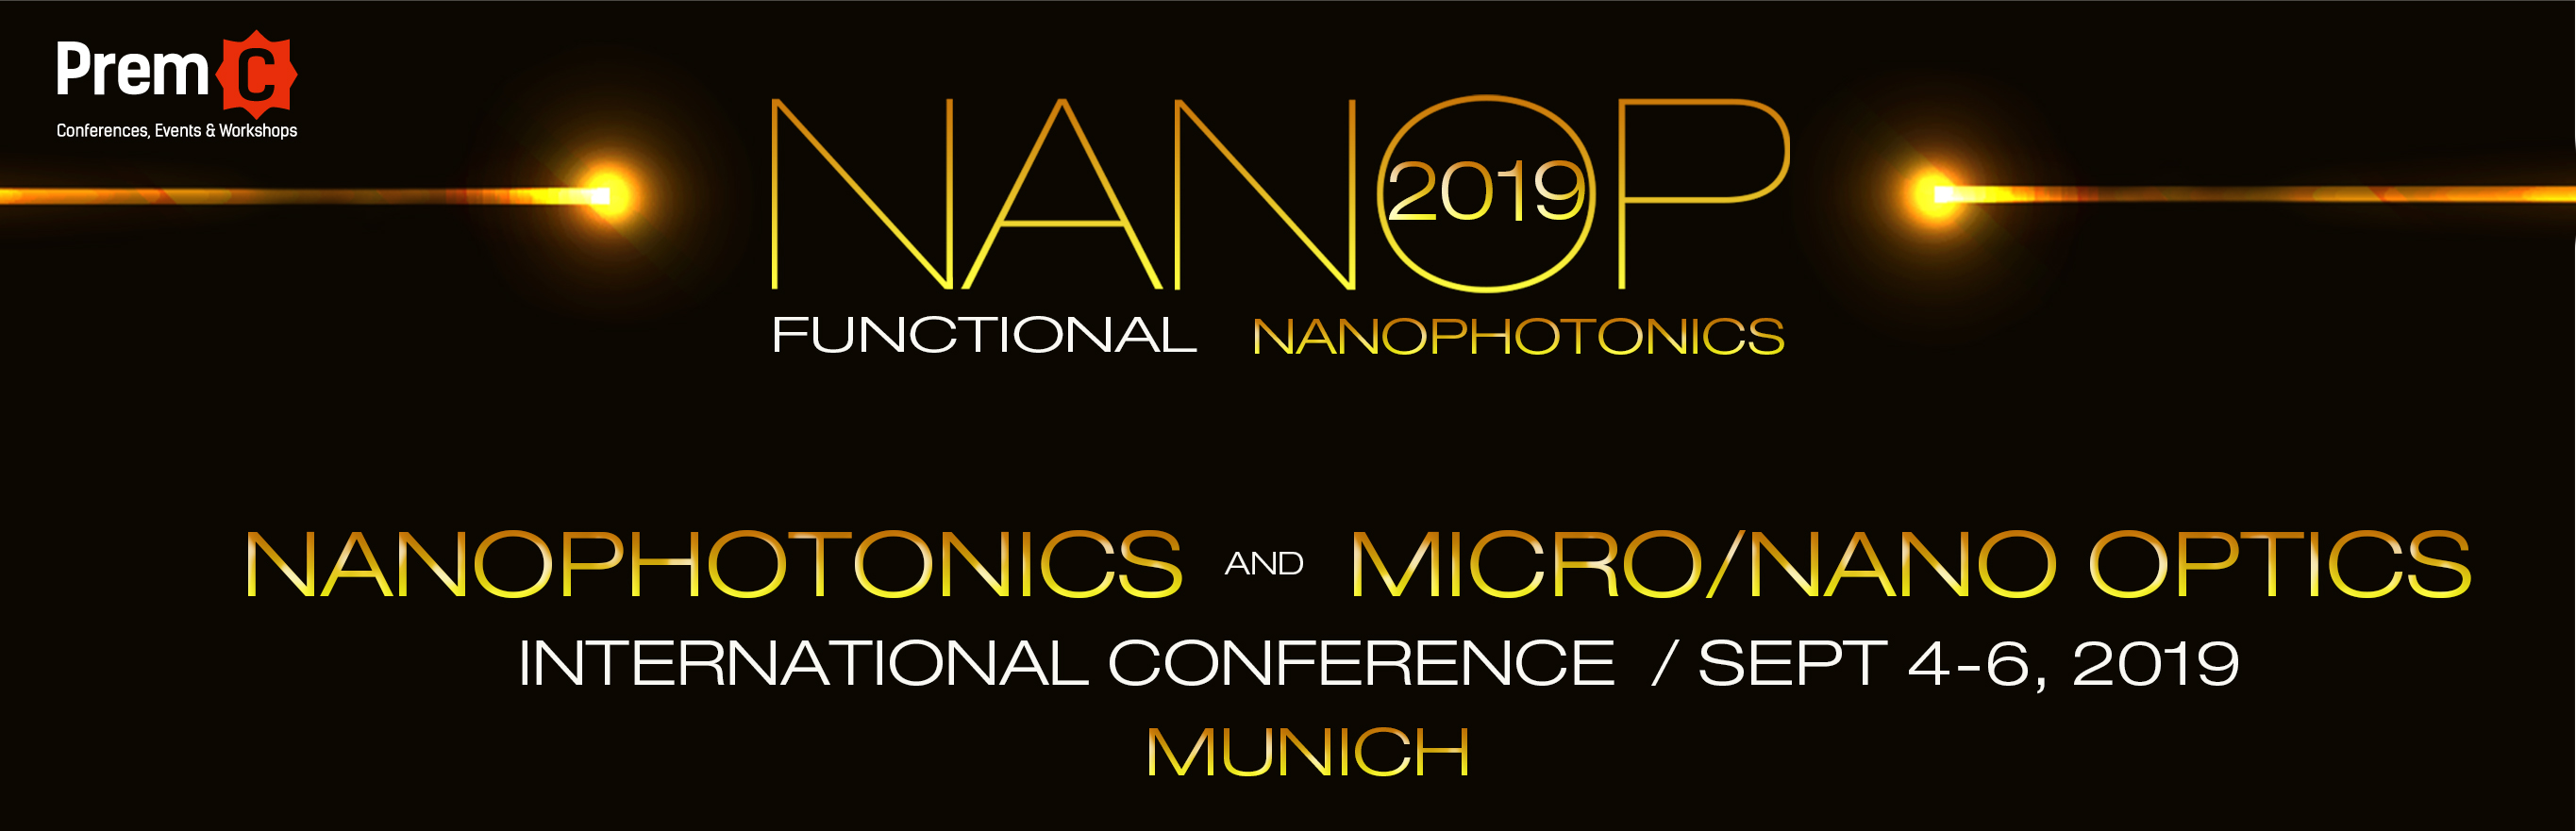 Nanophotonics and Micro/Nano Optics International Conference 2018 banner